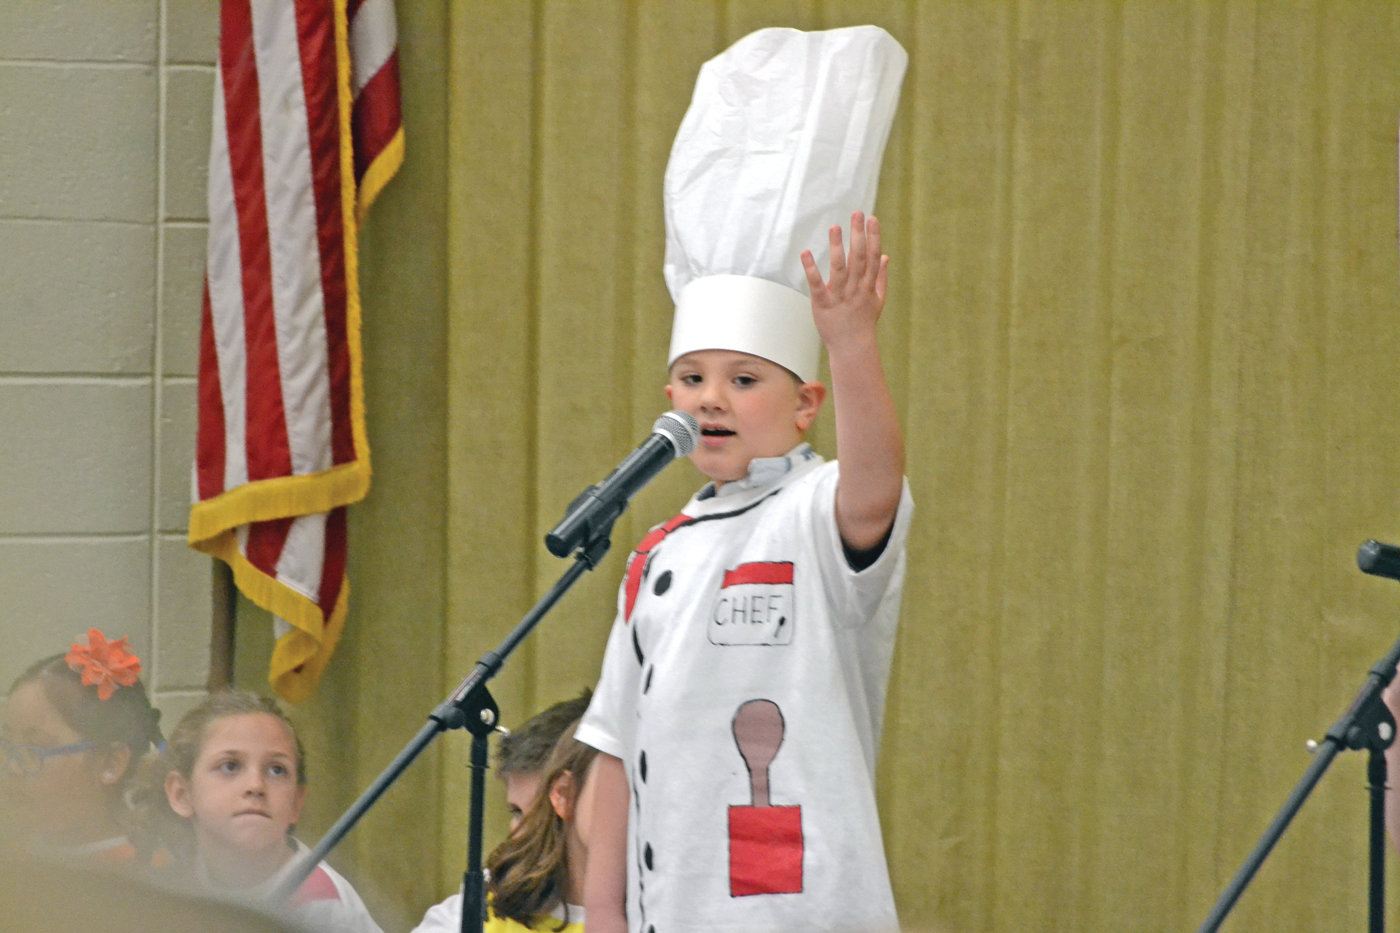 BON APPETIT: Hoxsie first-grader Shaun Moranto portrays a chef during his performance.